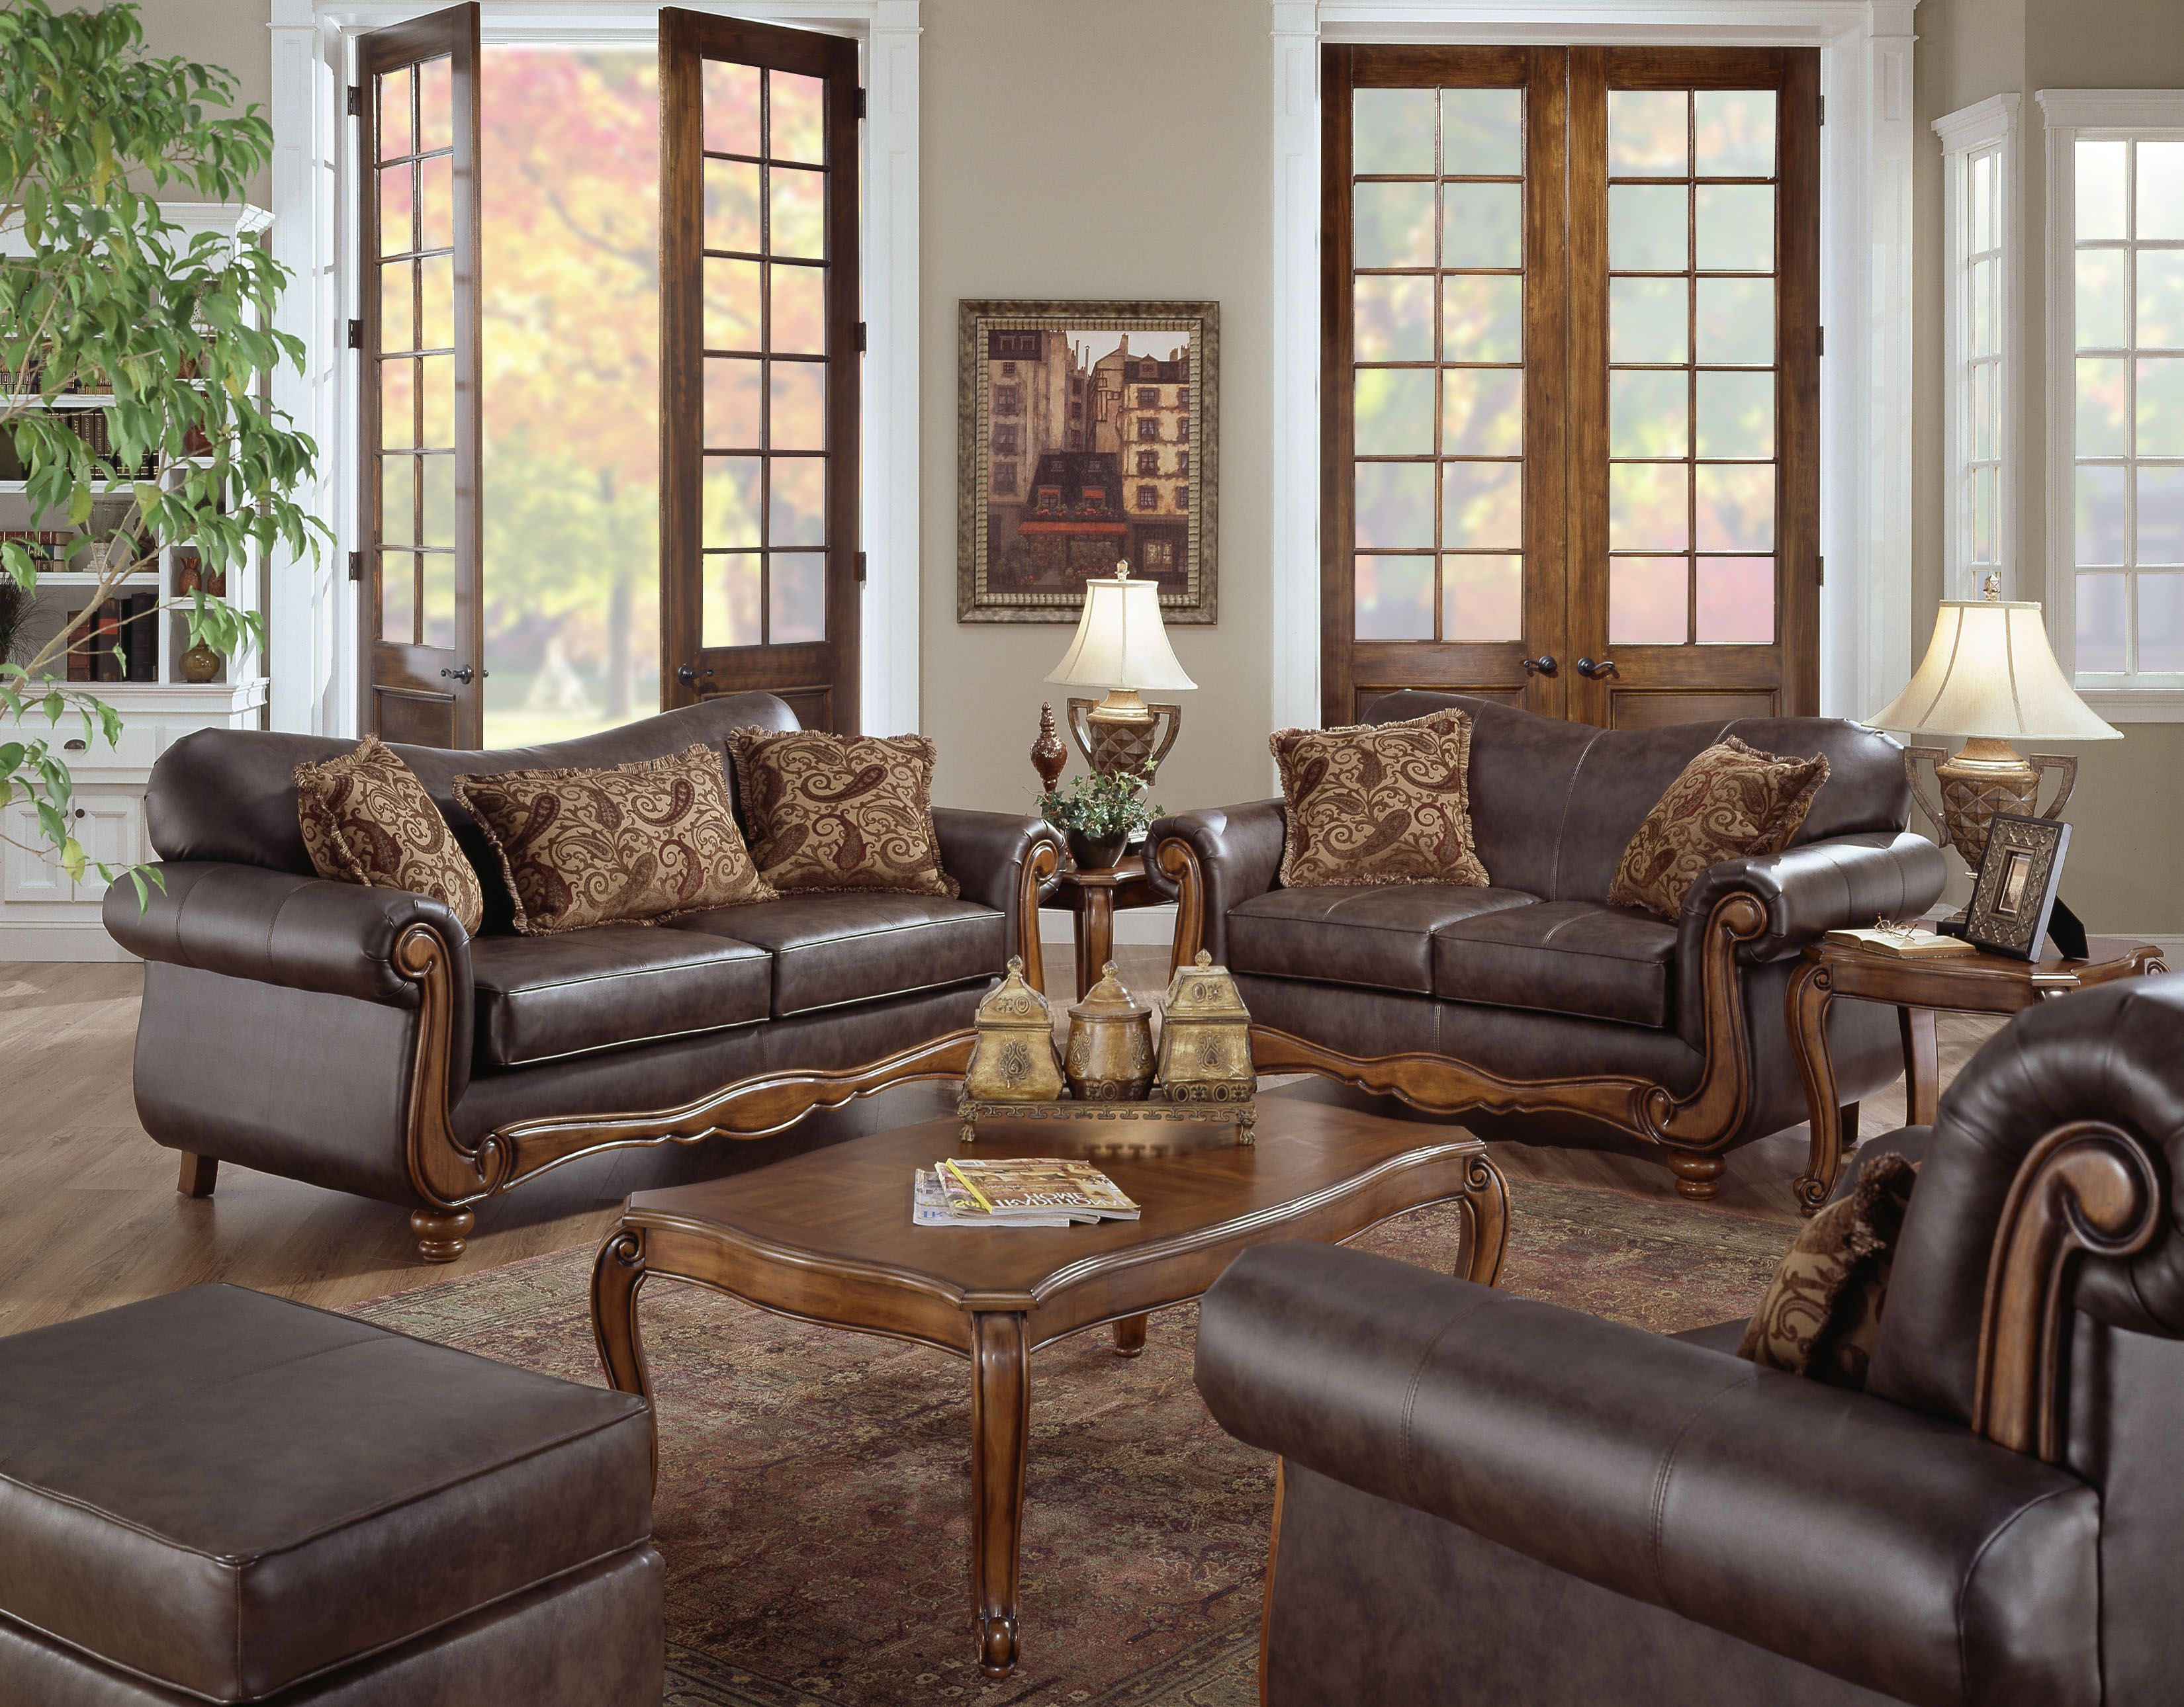 Adequately Selecting Leather Living Room Furniture Sets Leather Living Room Set Traditional Living Room Furniture Cheap Living Room Sets